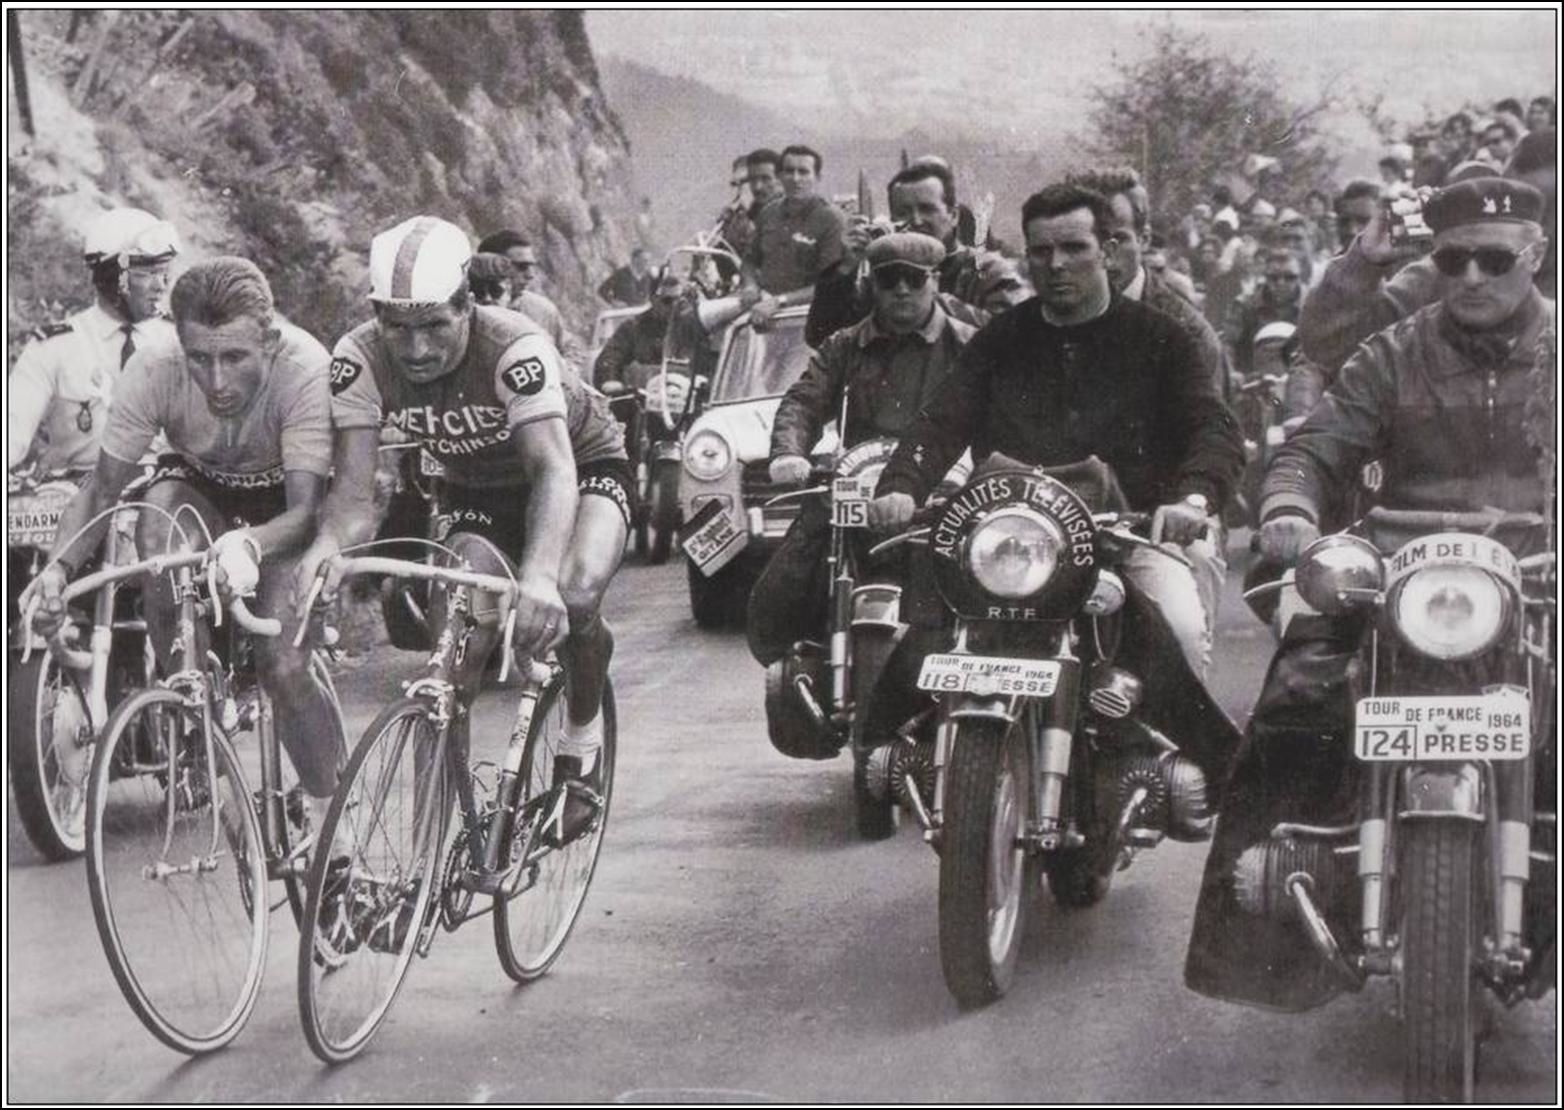 Tour de France:Duel Poulidor Anquetil au Puy de Dome